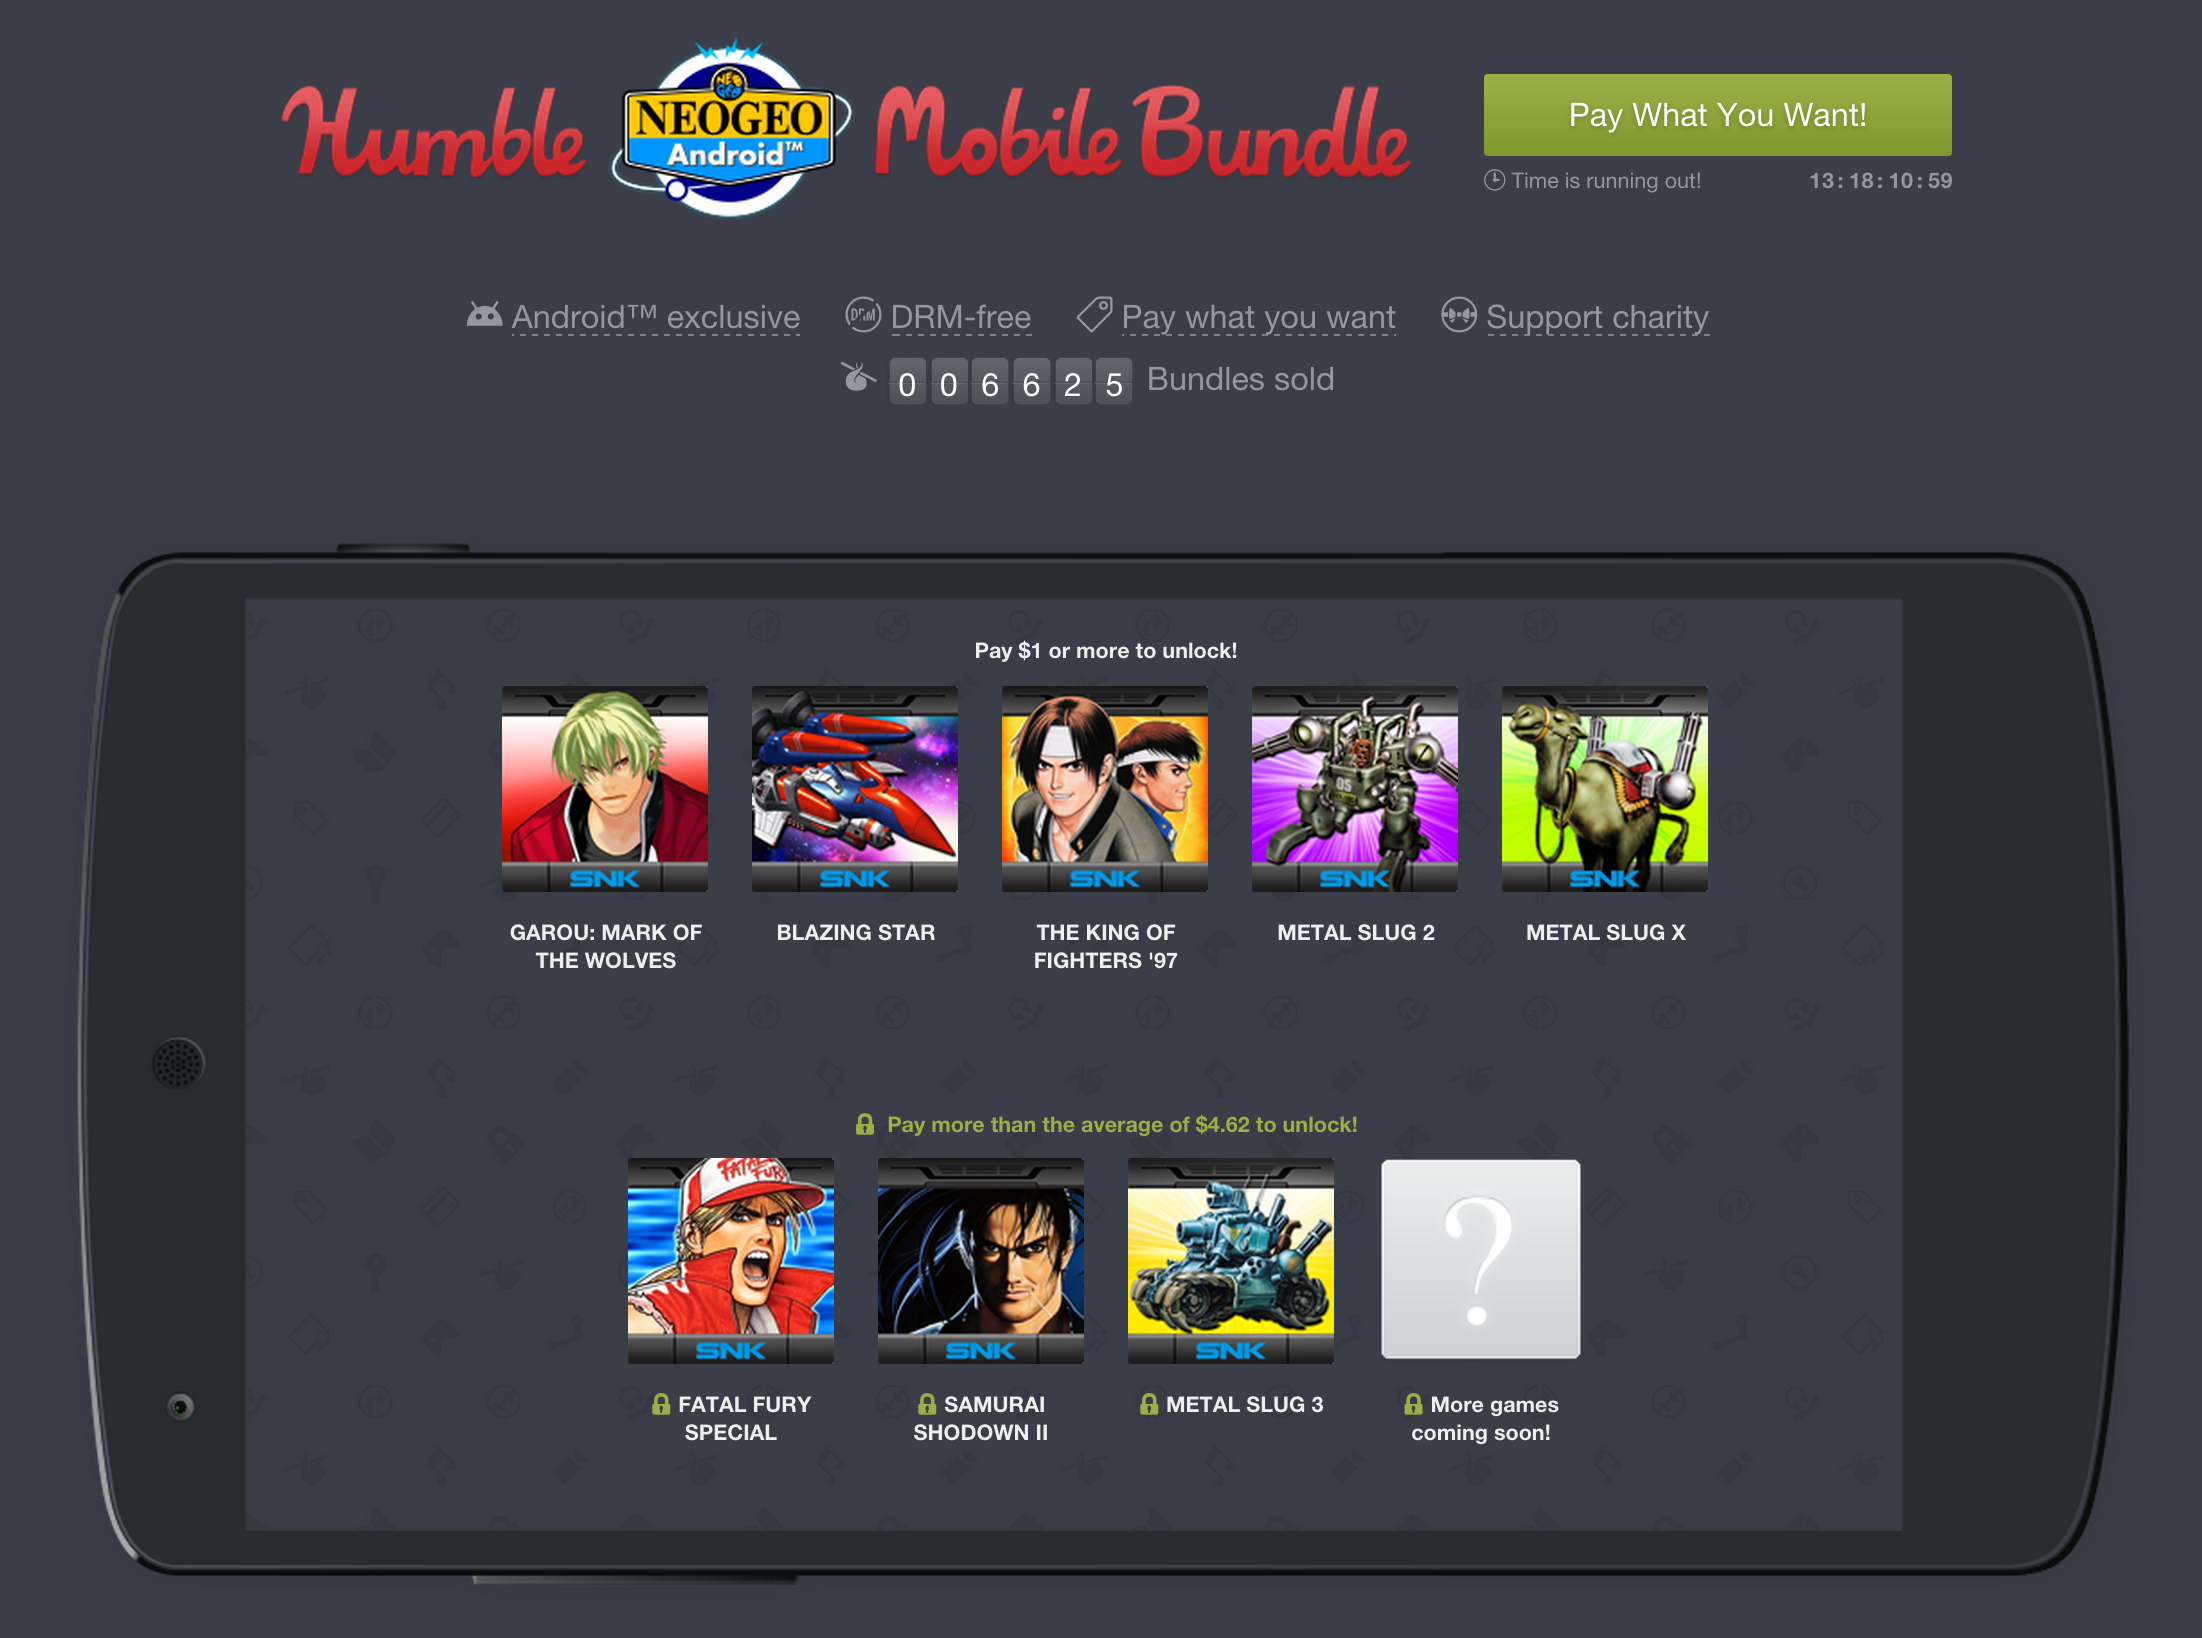 Humble Bundle discontinues Android-focused Mobile Bundles